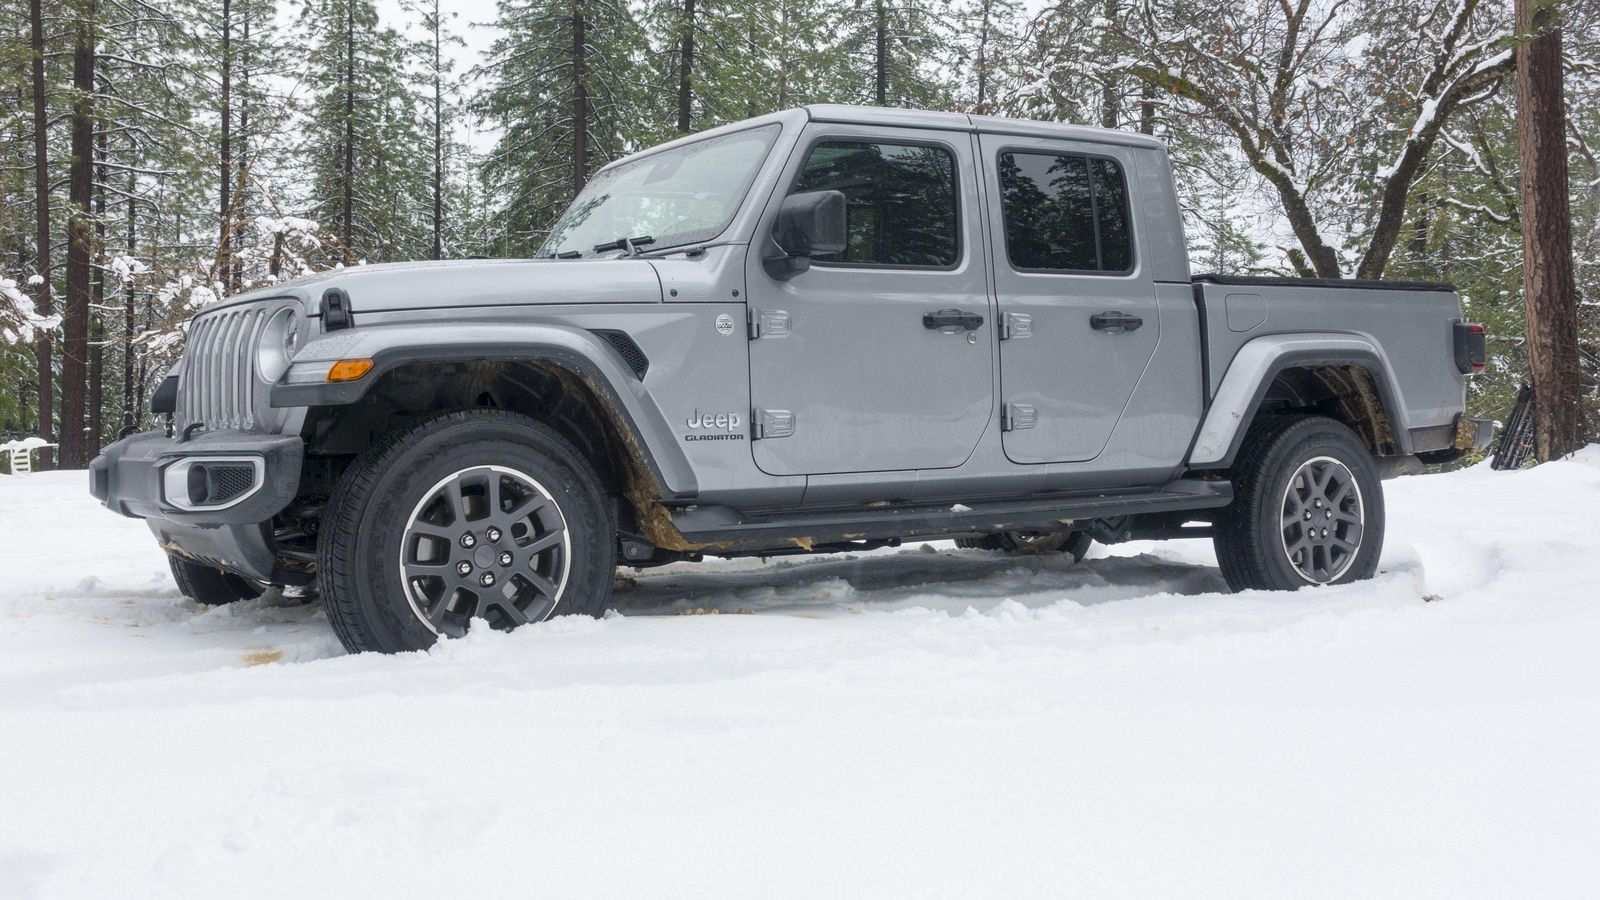 88 All New 2020 Jeep Wrangler Pickup Truck Release Date